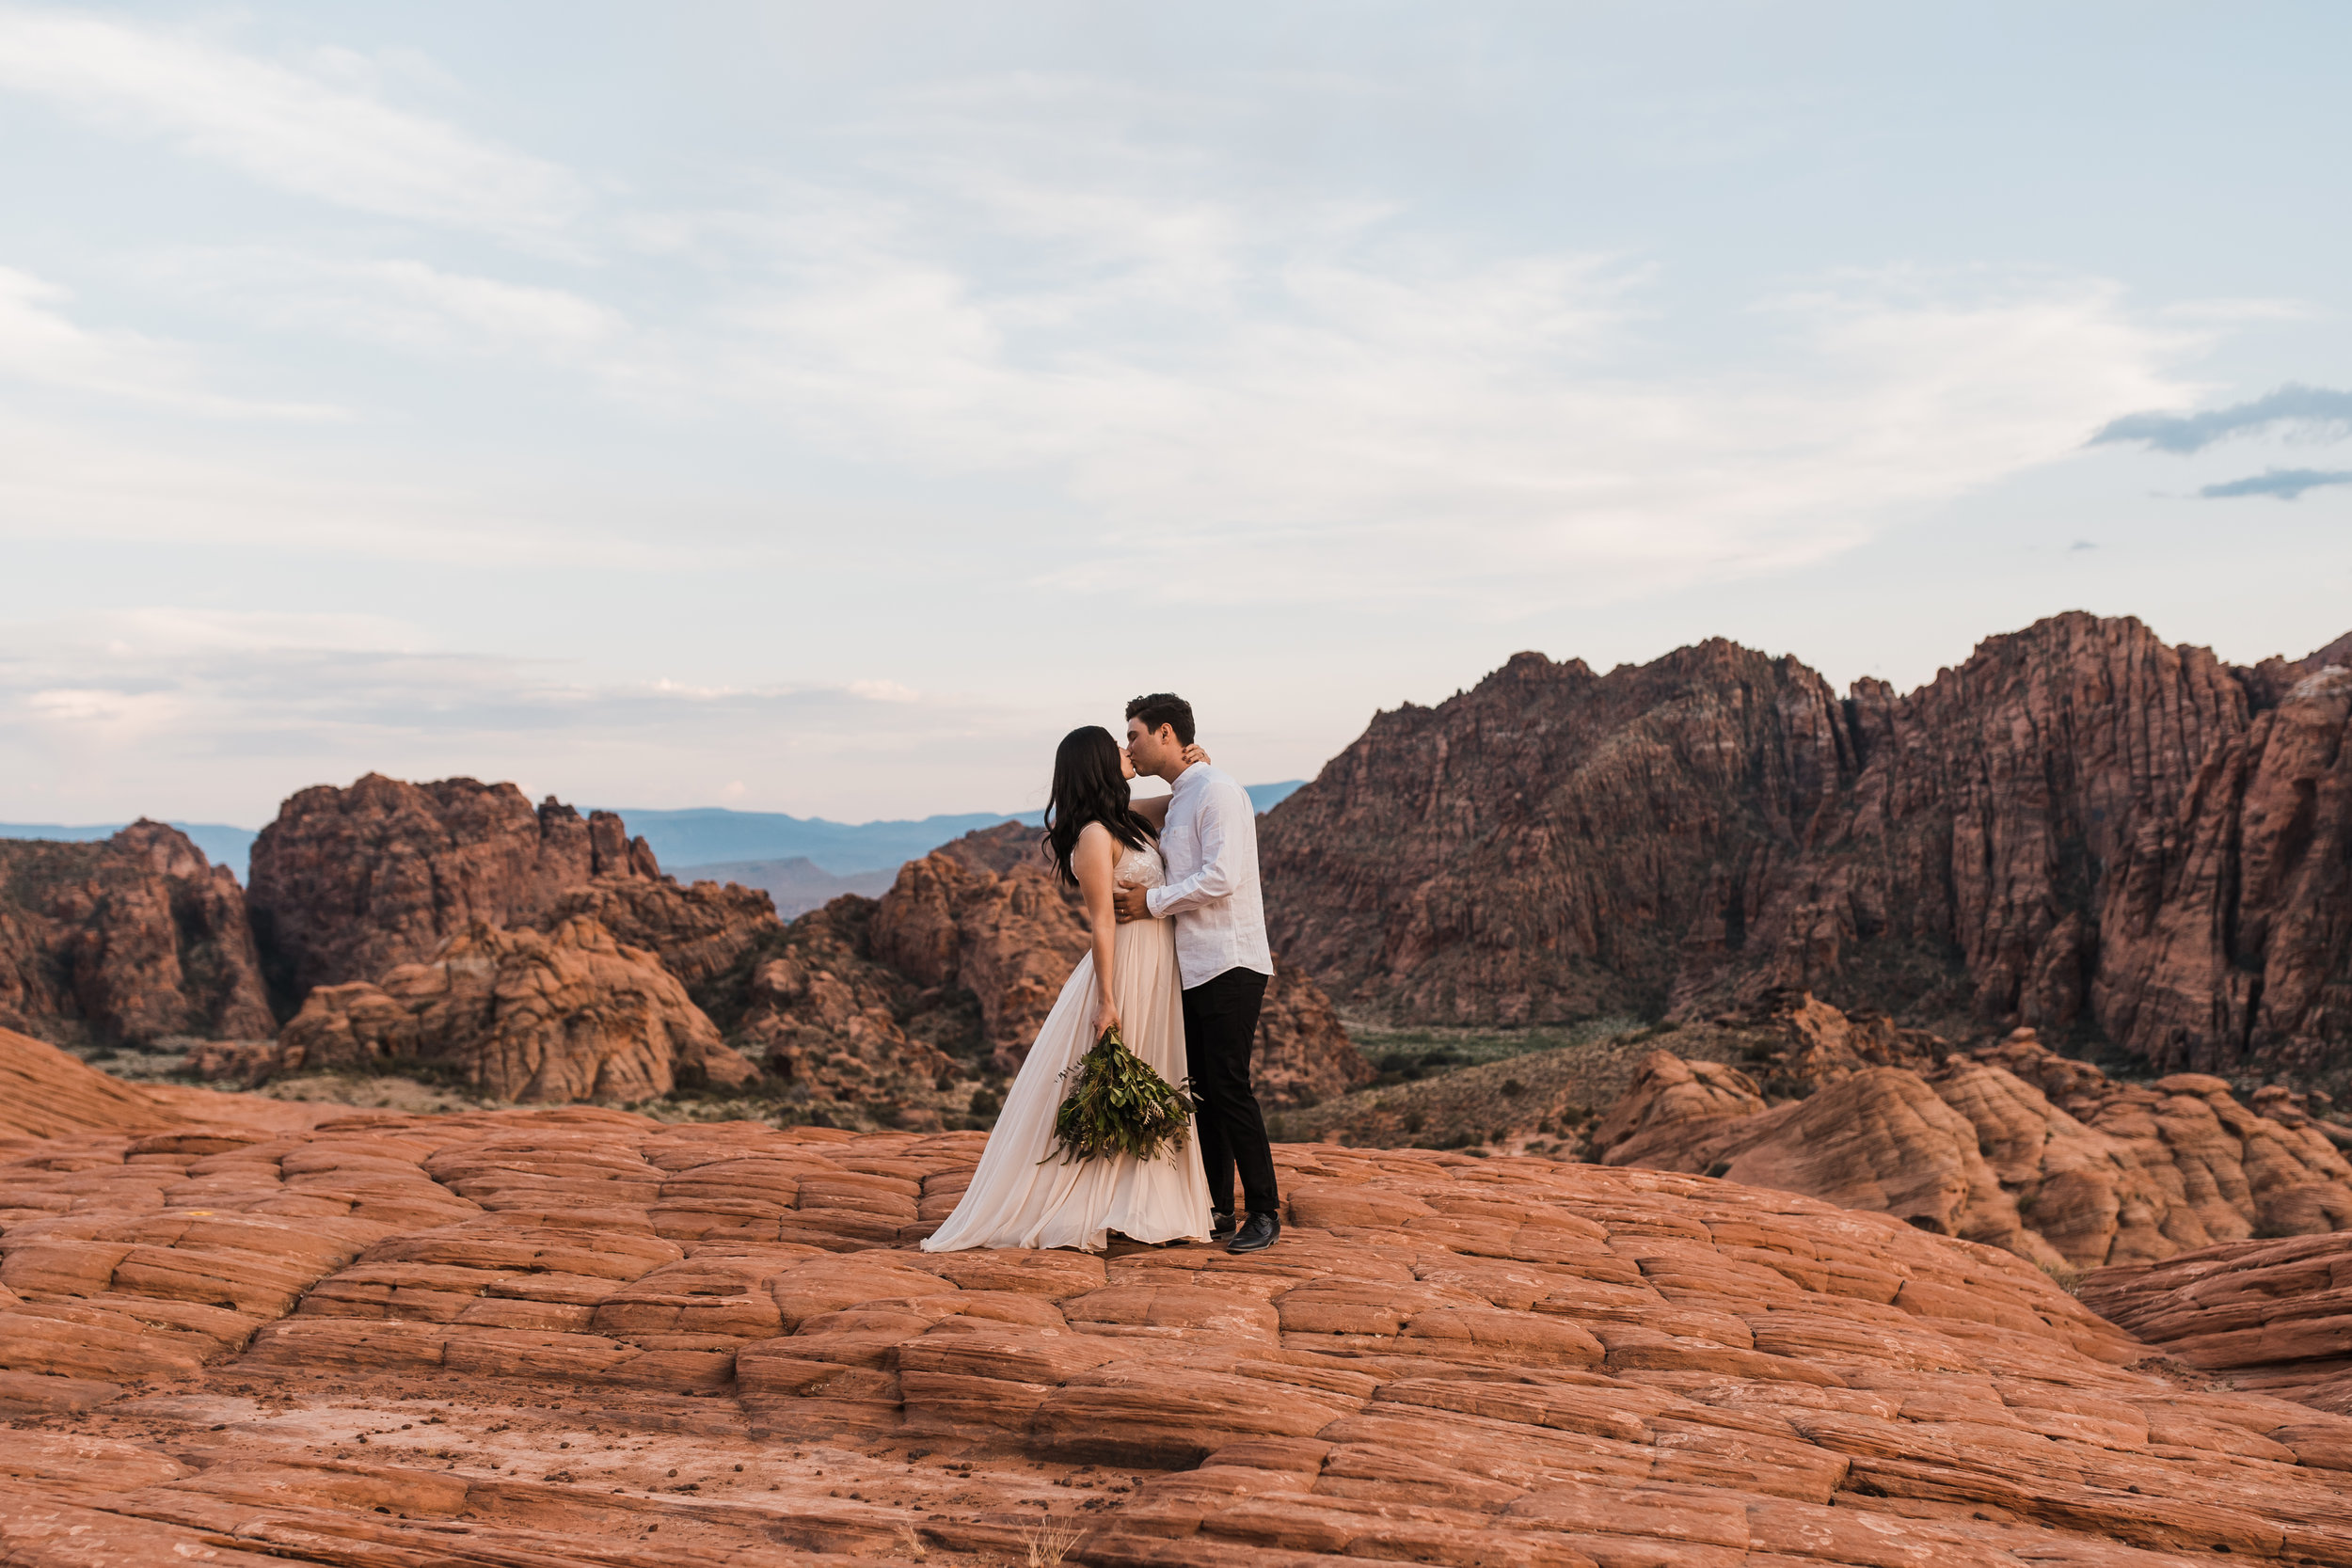 Snow Canyon State Park Elopement | Between the Pine Adventure Elopement Photography